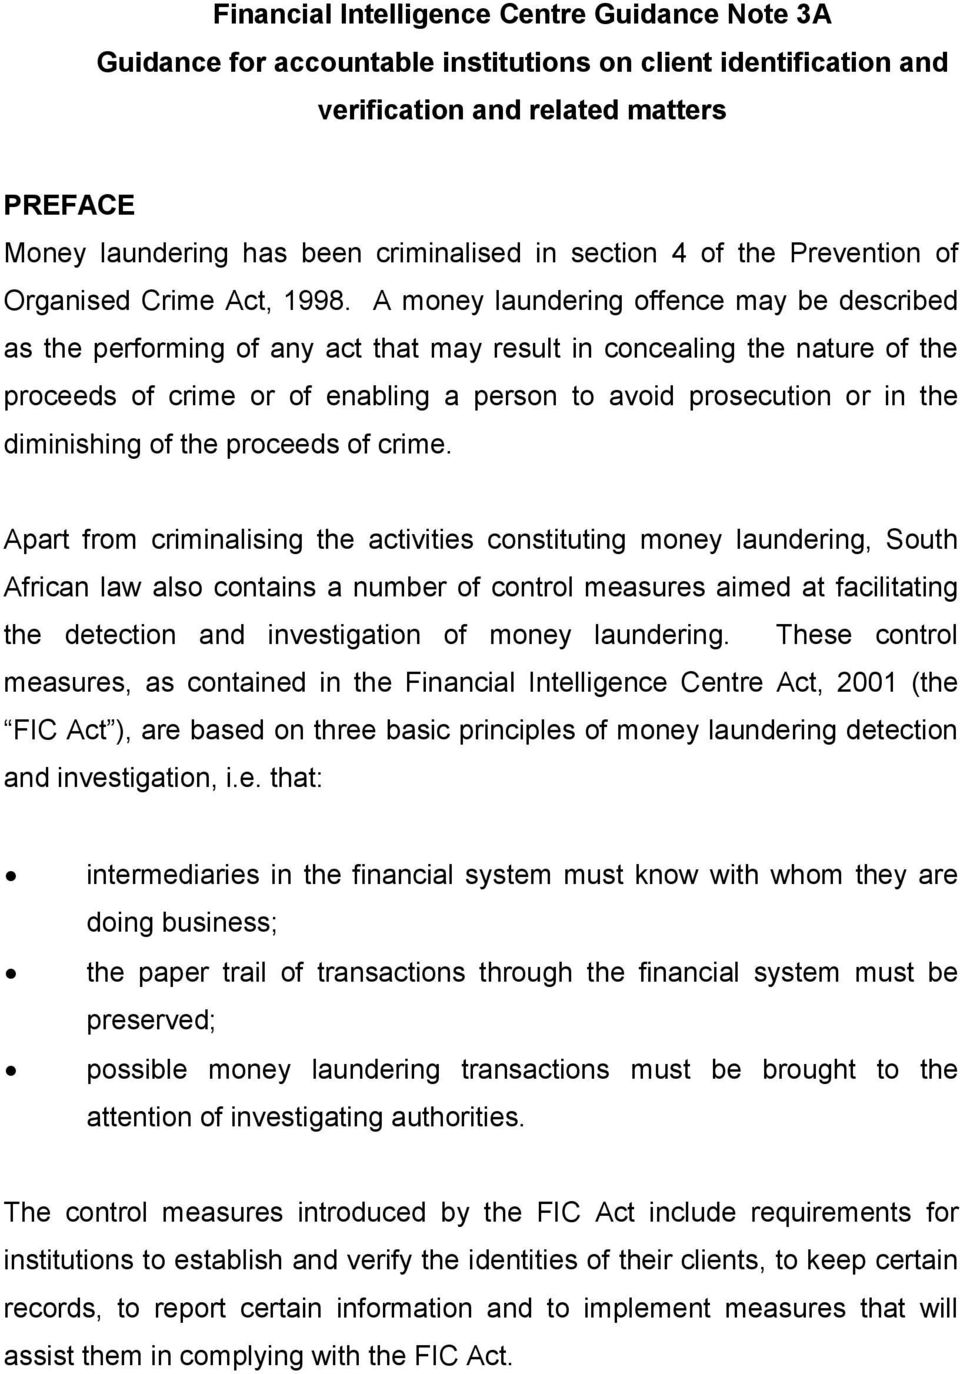 A money laundering offence may be described as the performing of any act that may result in concealing the nature of the proceeds of crime or of enabling a person to avoid prosecution or in the